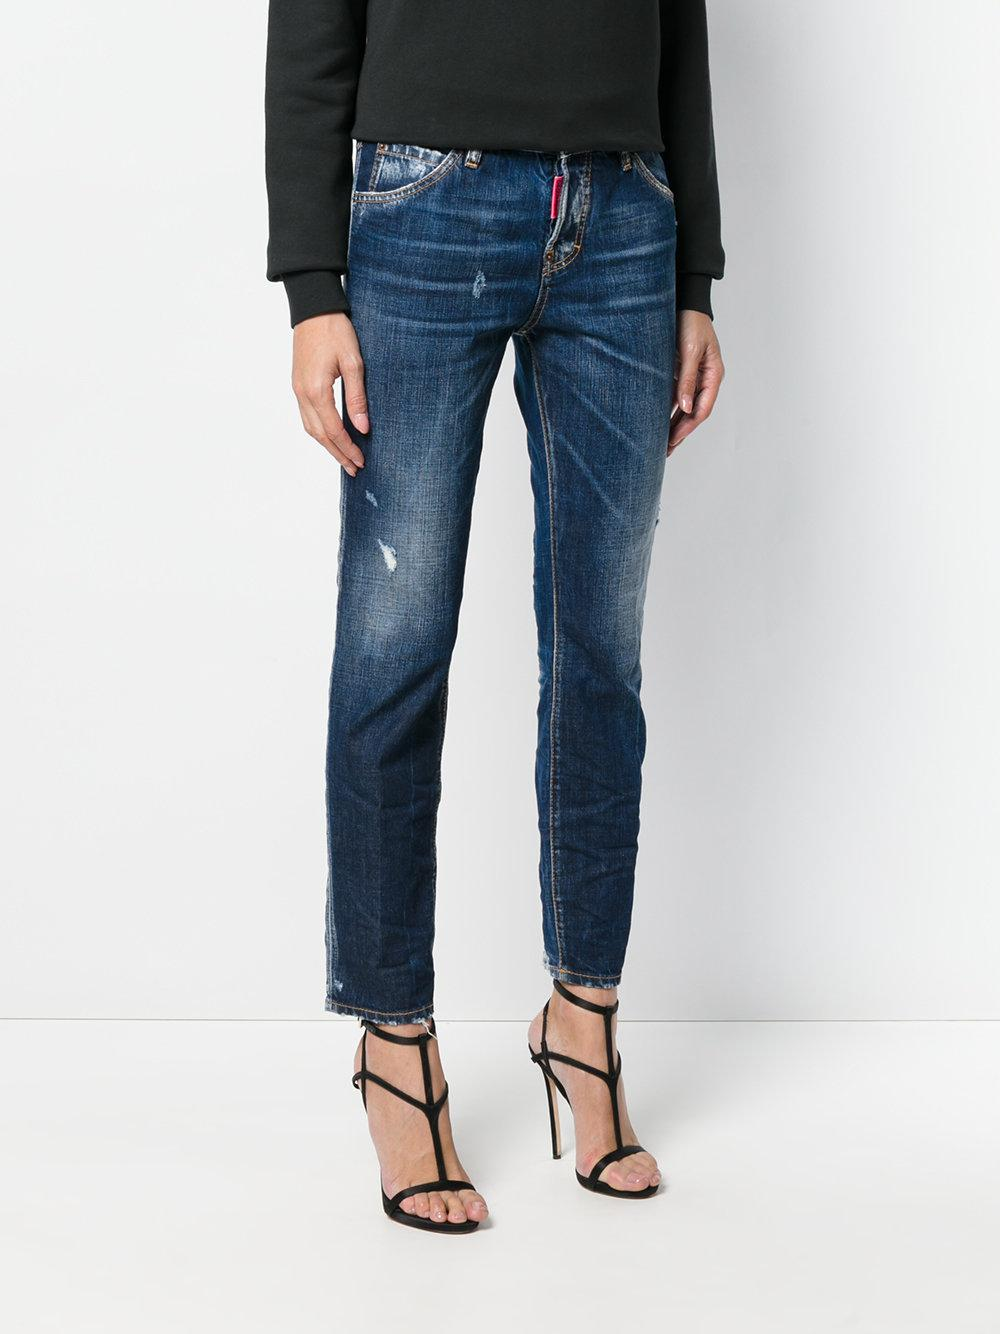 DSquared² Be Nice Straight-leg Denim Jeans in Blue